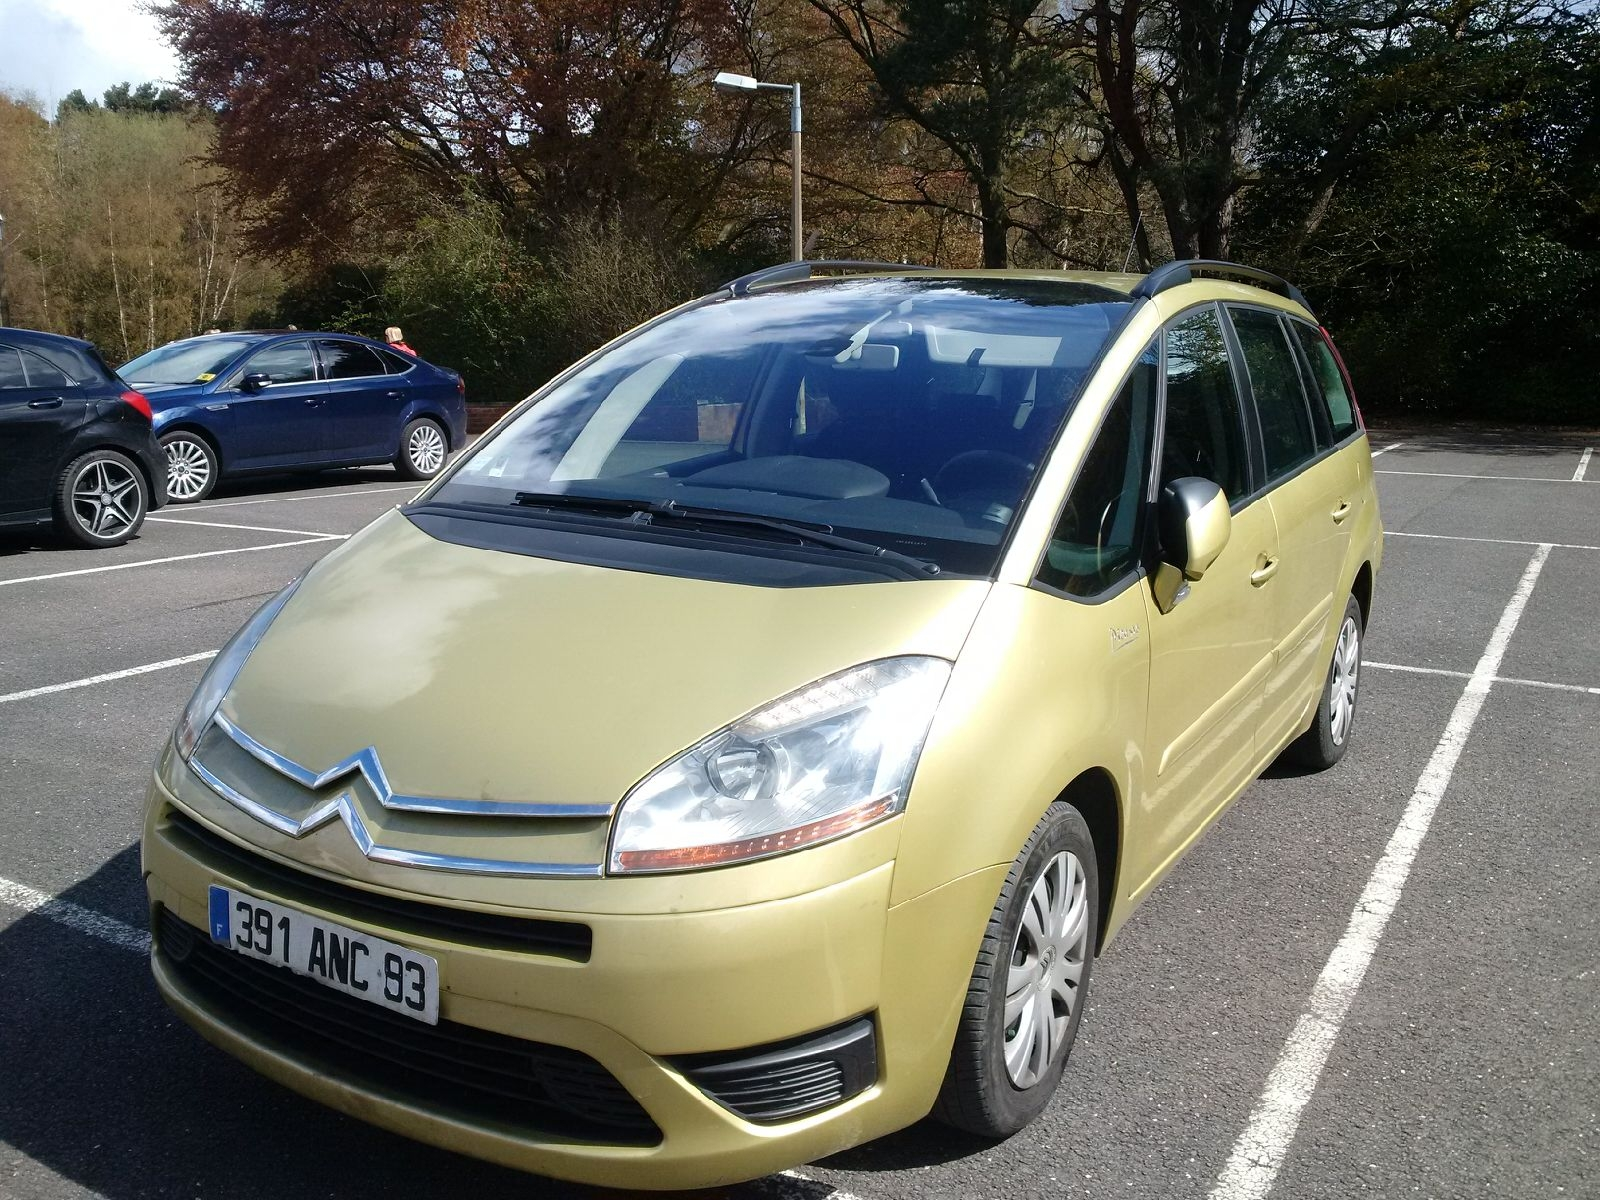 CITROEN C4 GRAND PICASSO 1.6 HDI 110 7 Seats FRENCH REGISTERED